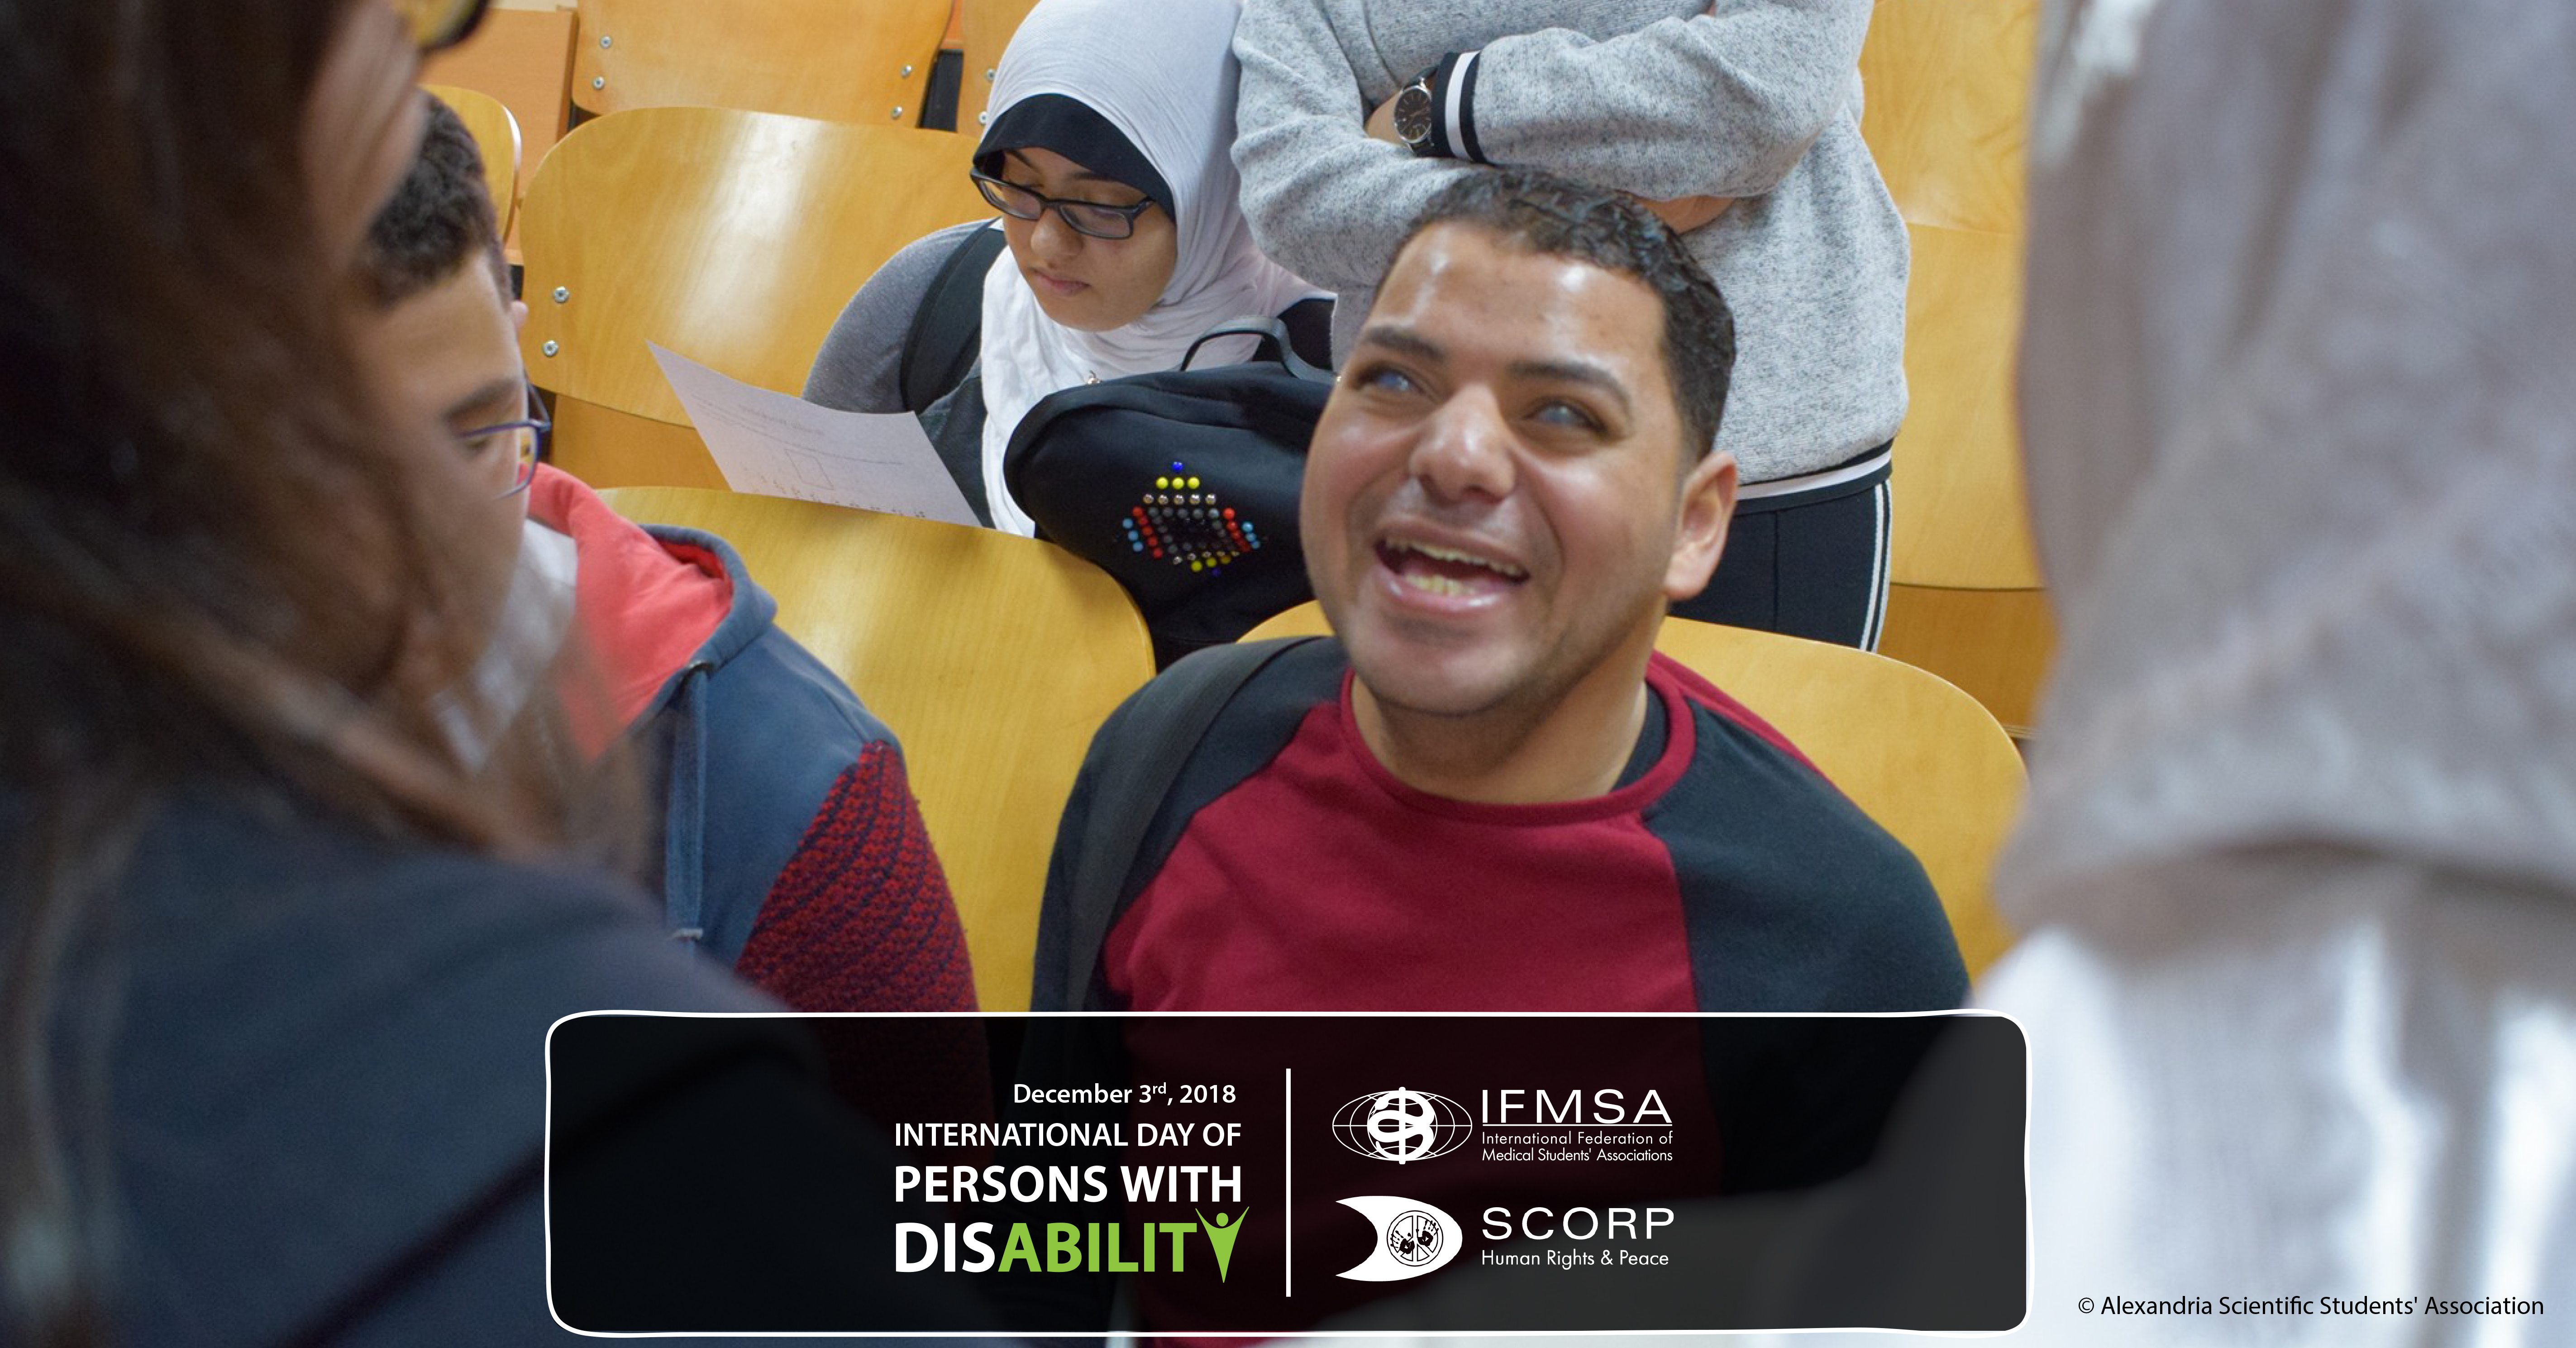 International Day of Persons with Disability (IDPD) 2018